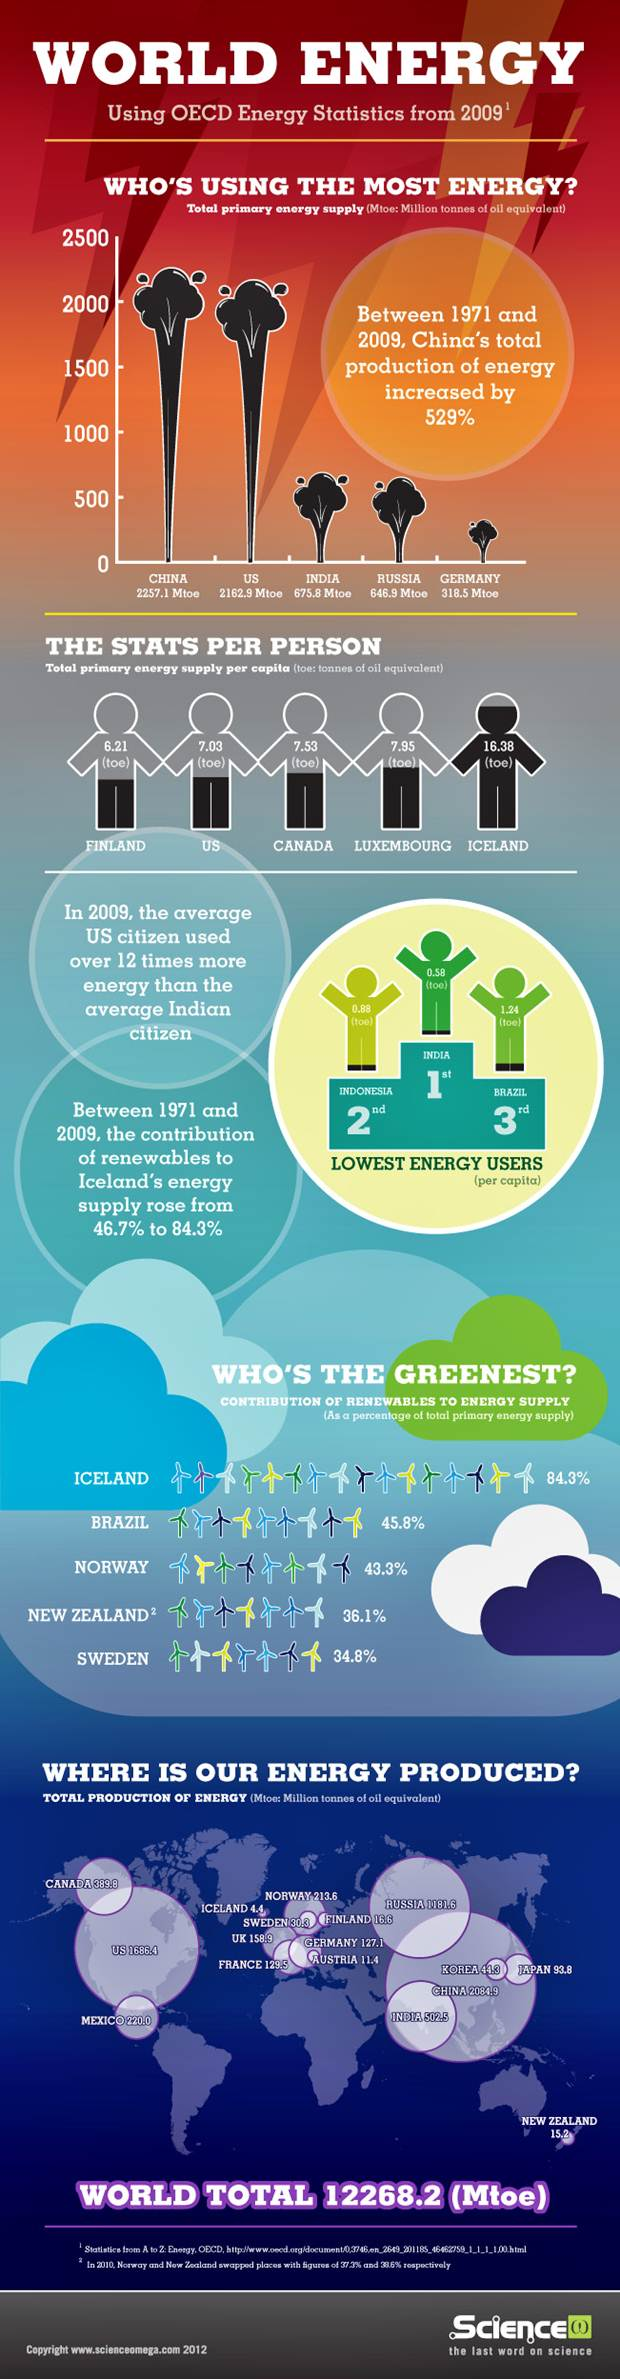 world energy consumption and production